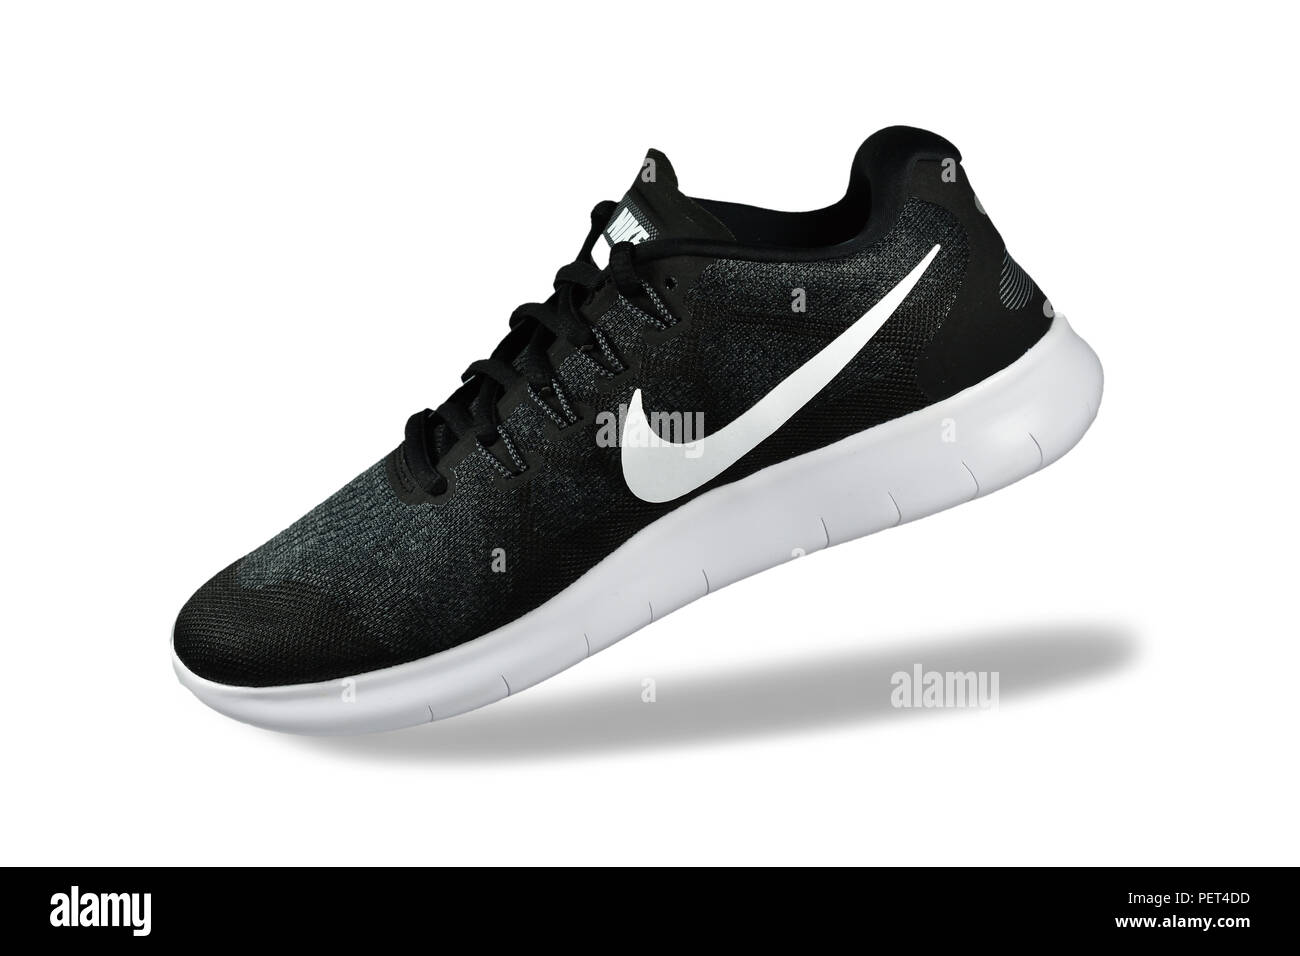 Mens Nike Barratts shoes